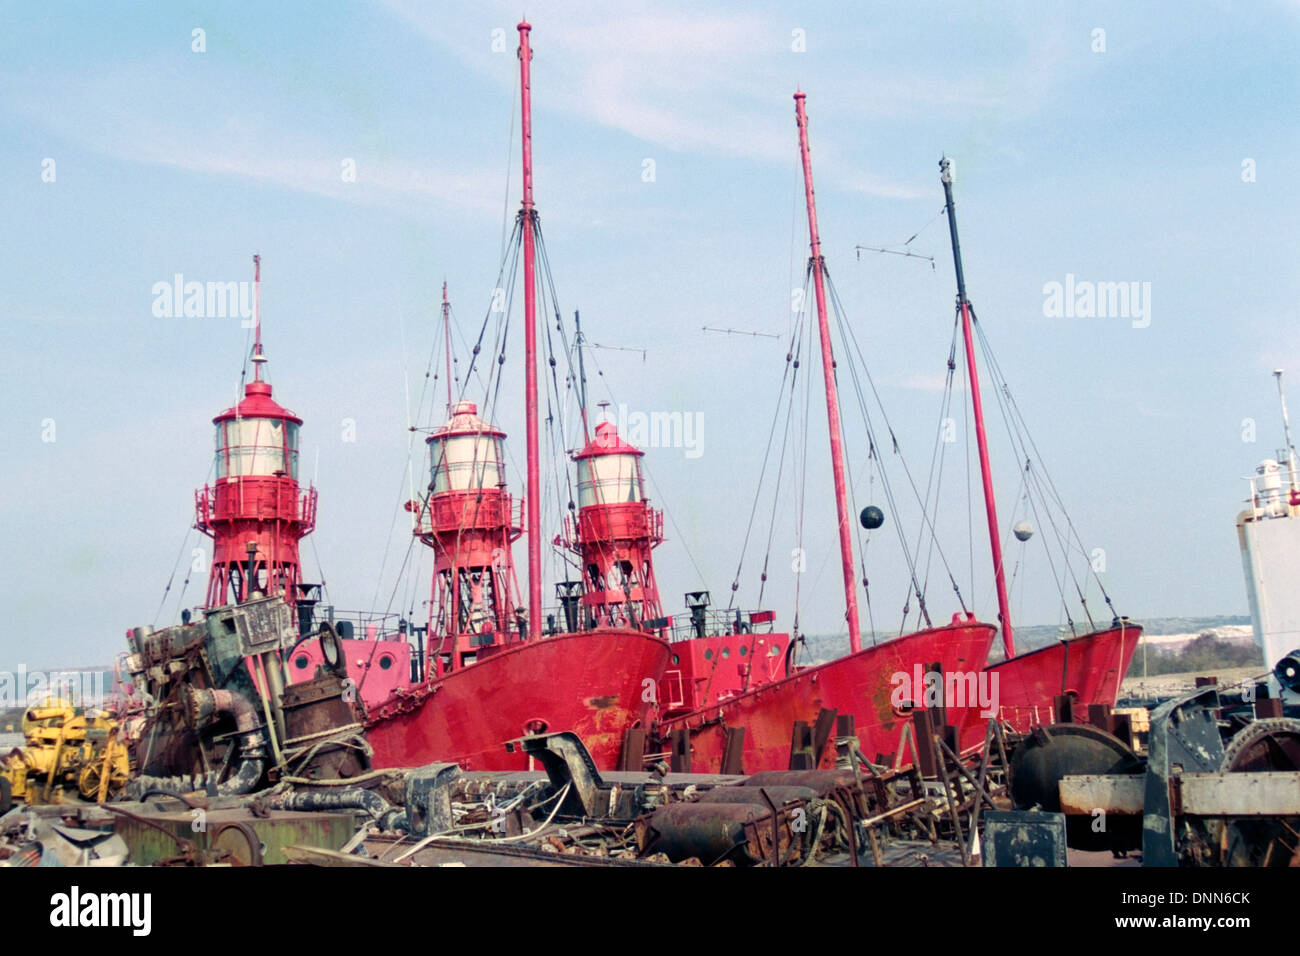 old lightships await their fate in the old john pounds scrapyard in portsmouth england during the early 1990s Stock Photo